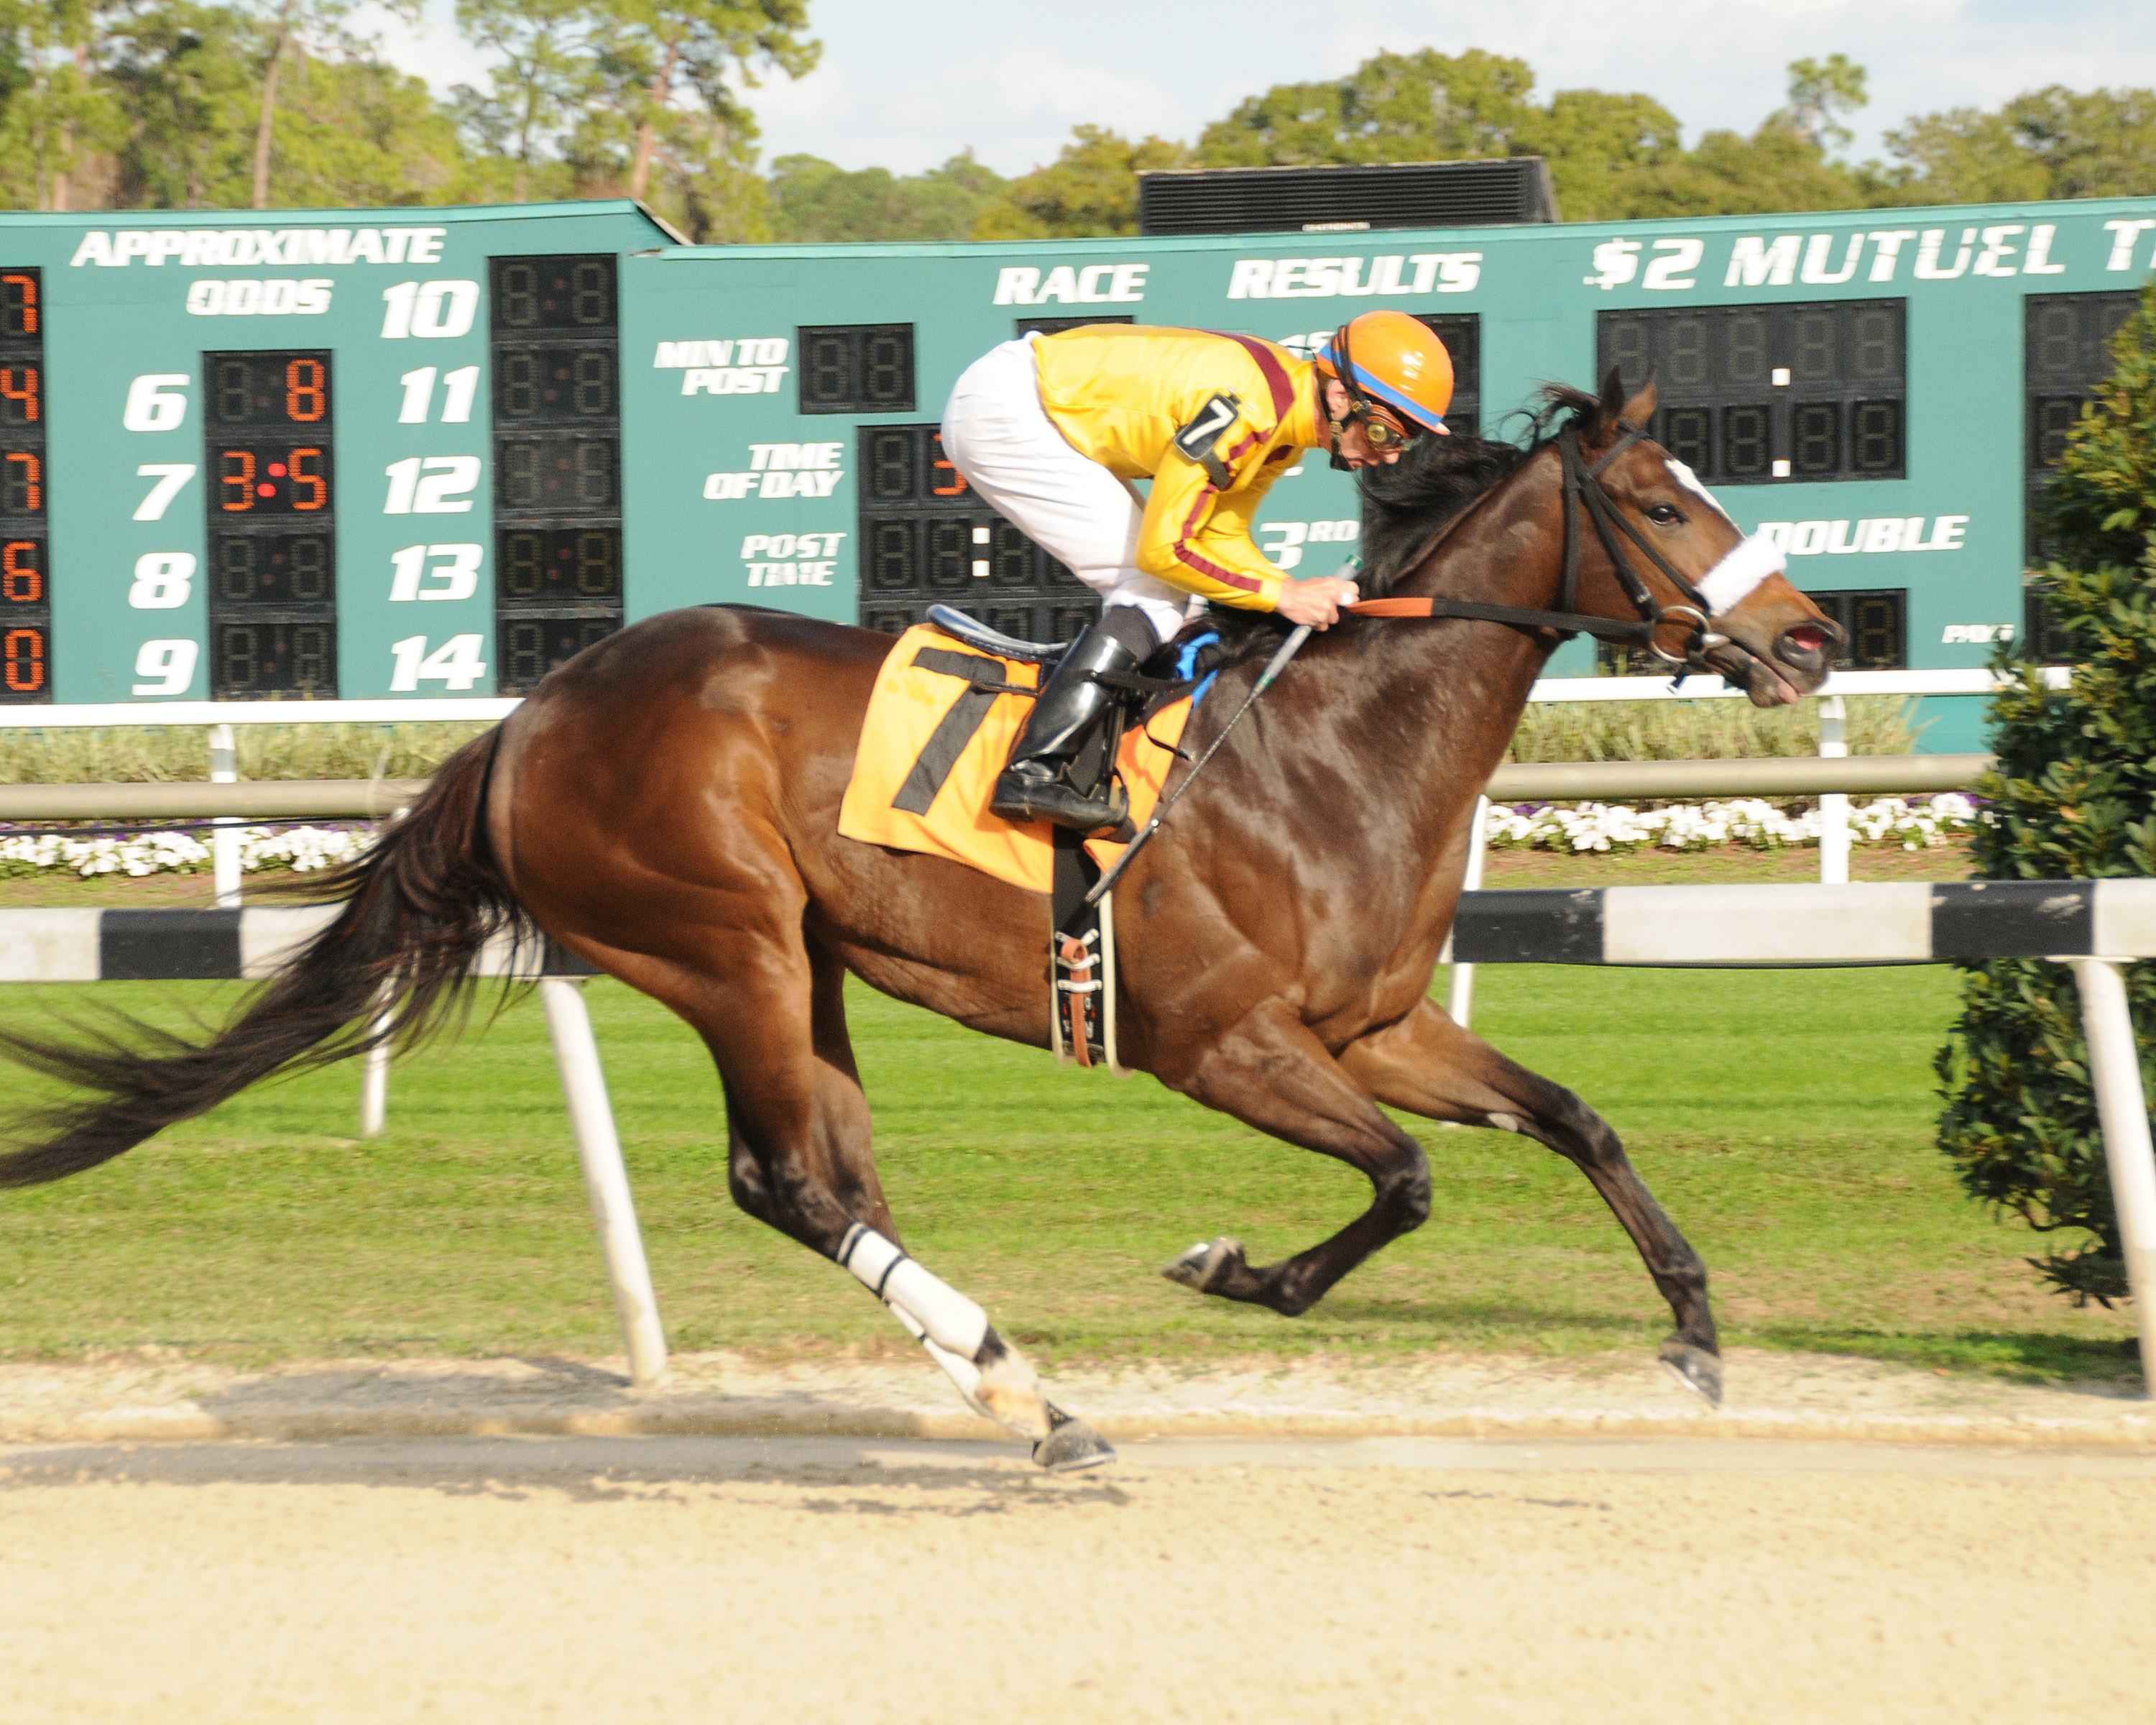 Hanalei Hailey breaking her maiden on December 3 by 11 1/4-lengths. Bred by Hart Farm. Photo courtesy SV Photography.